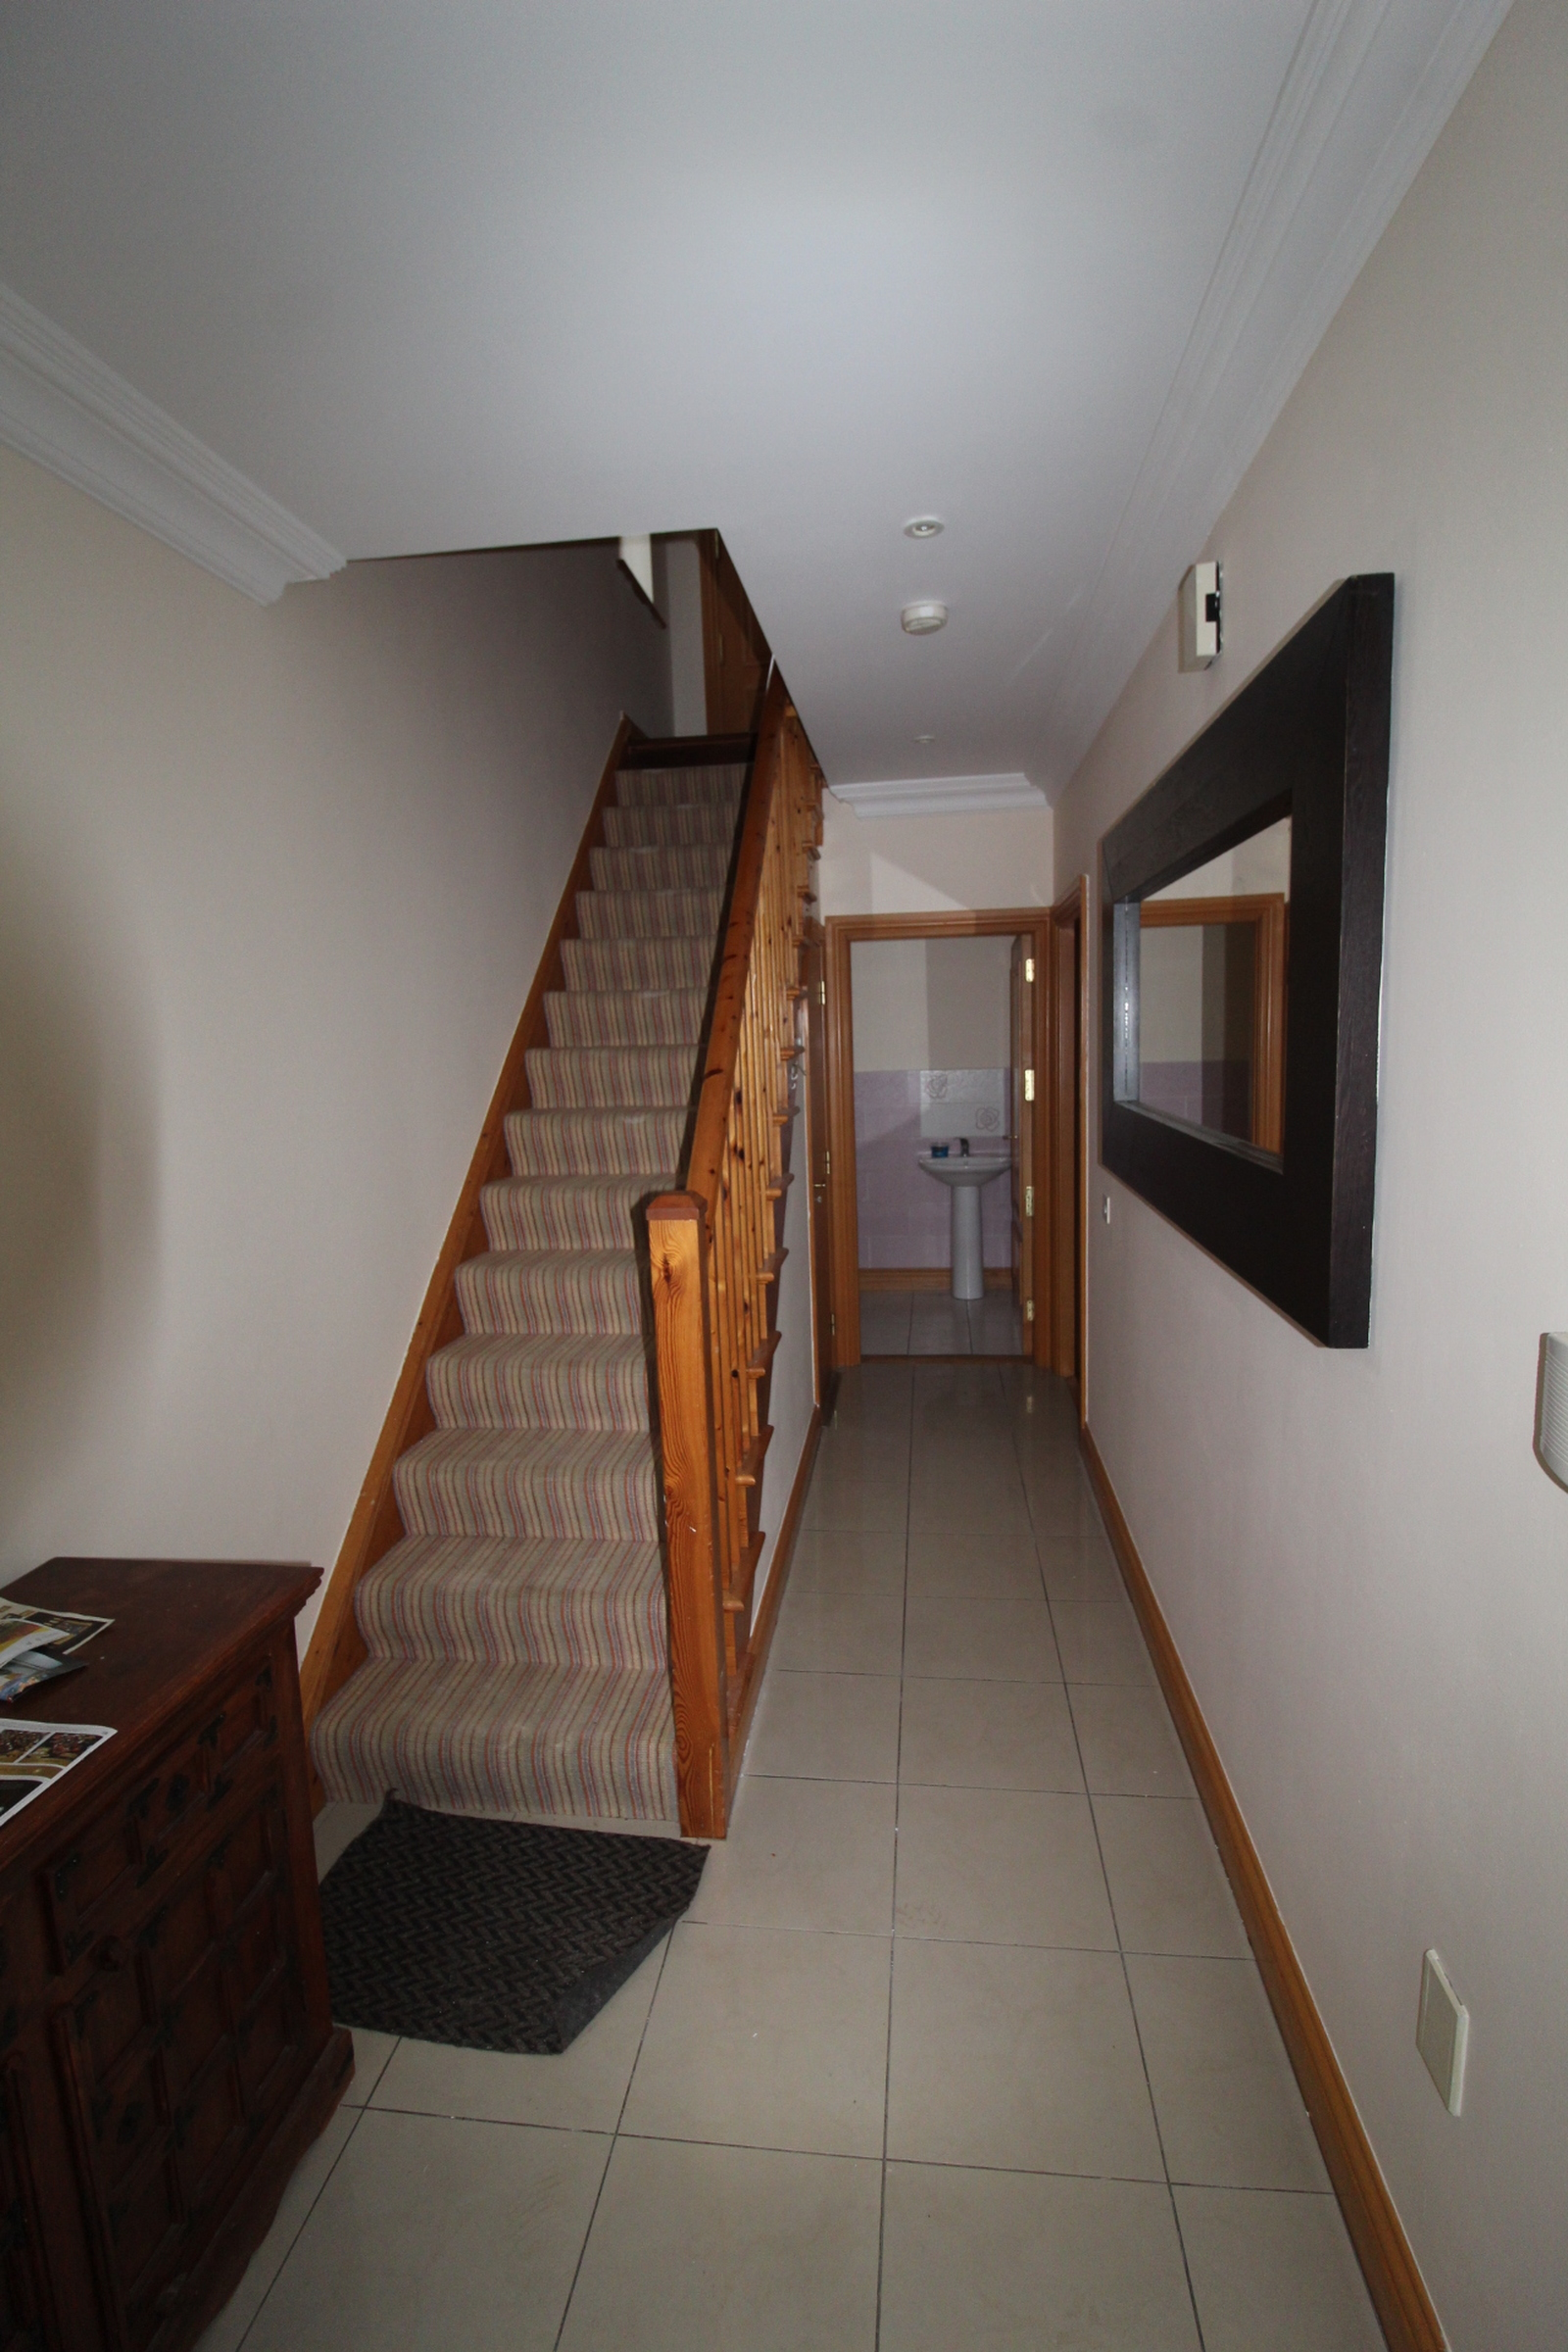 1A Maple Square, Castlepark Village, Mallow, Co. Cork